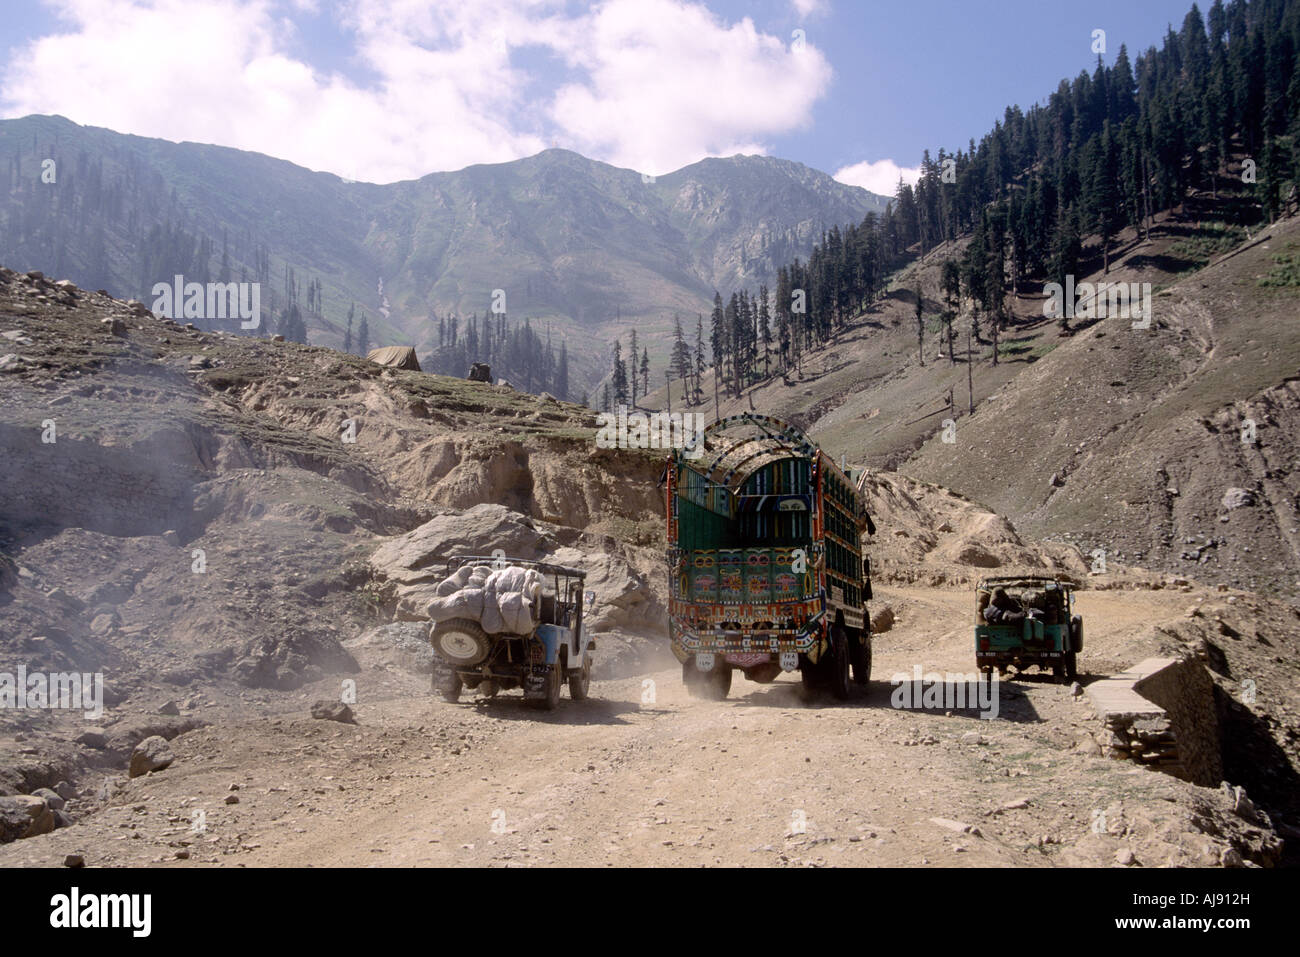 Pakistan NWFP Tribal Area Chitral Valley - Stock Image